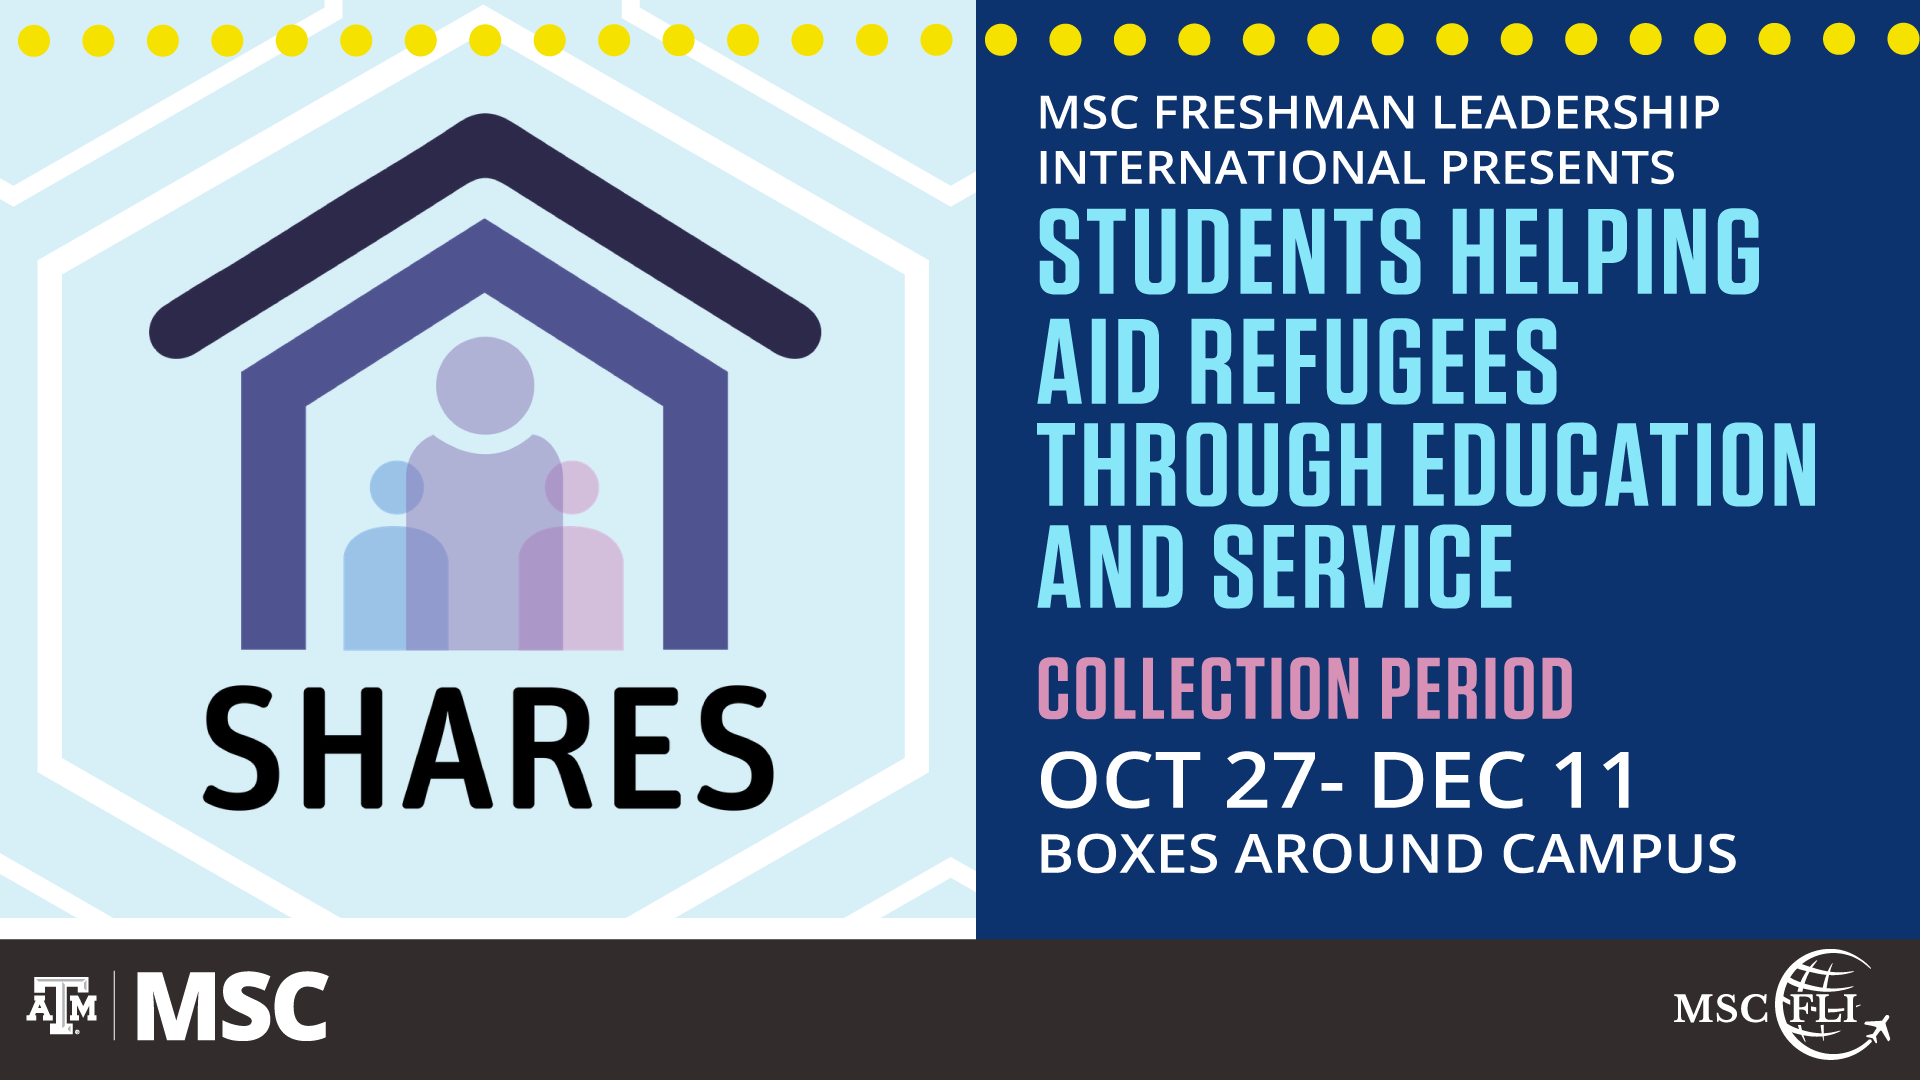 MSC Freshman Leadership International Presents Students Helping Aid Refugees Through Education and Service. Collection Period: October 27 to December 11. Boxes around campus.